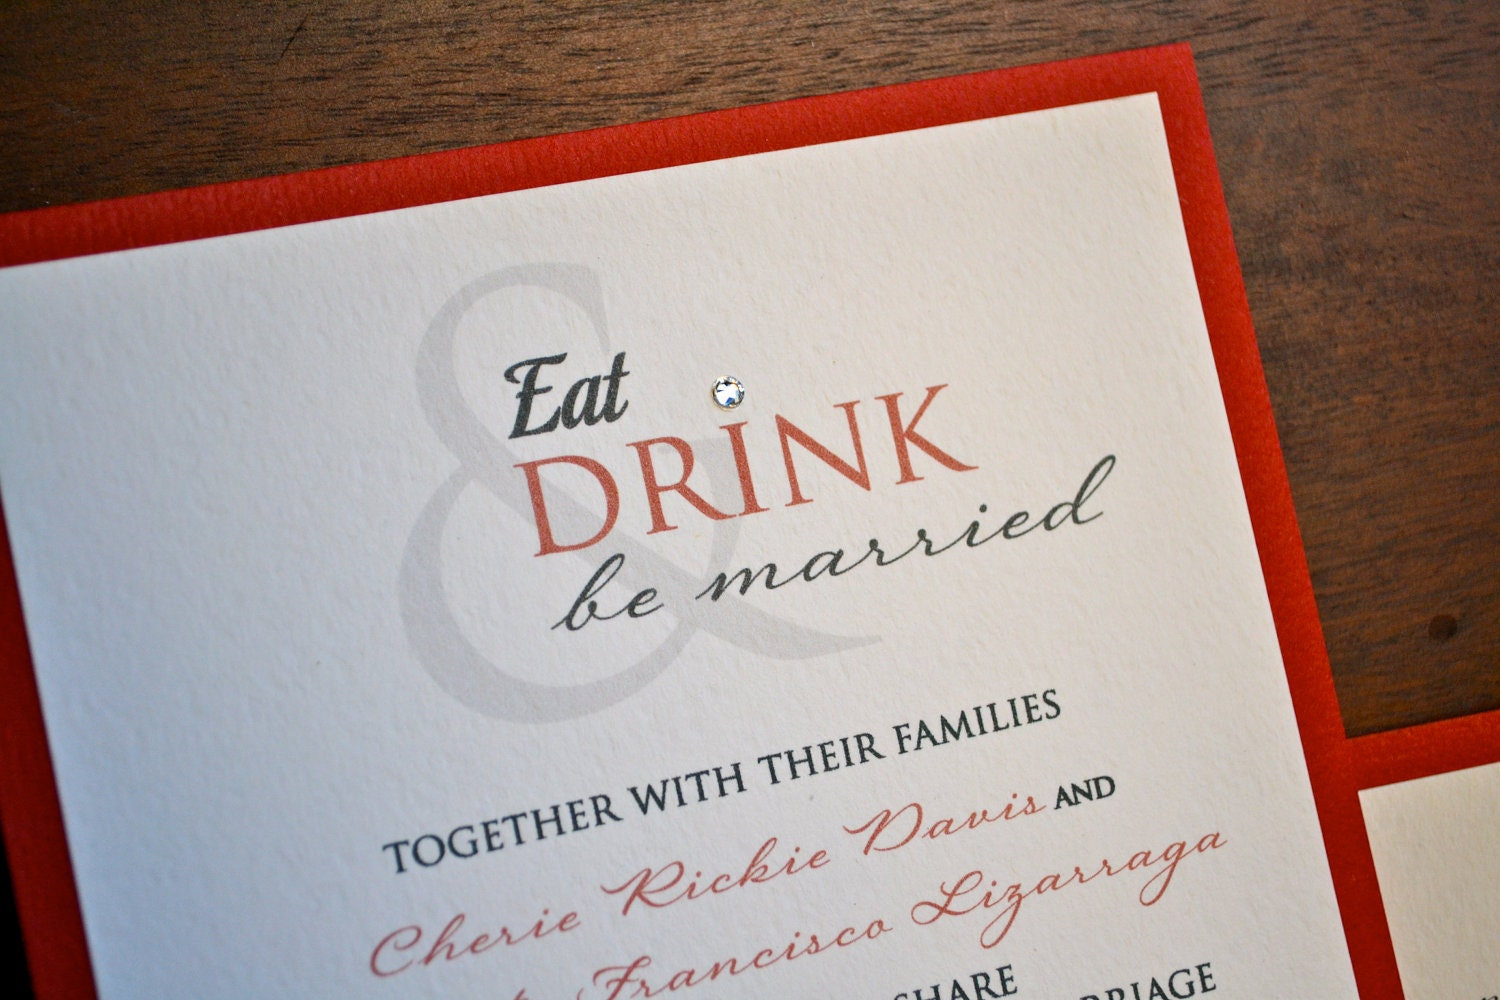 Wedding Invitations Eat Drink And Be Married: Eat Drink And Be Married Wedding Invitation By Nladegaard